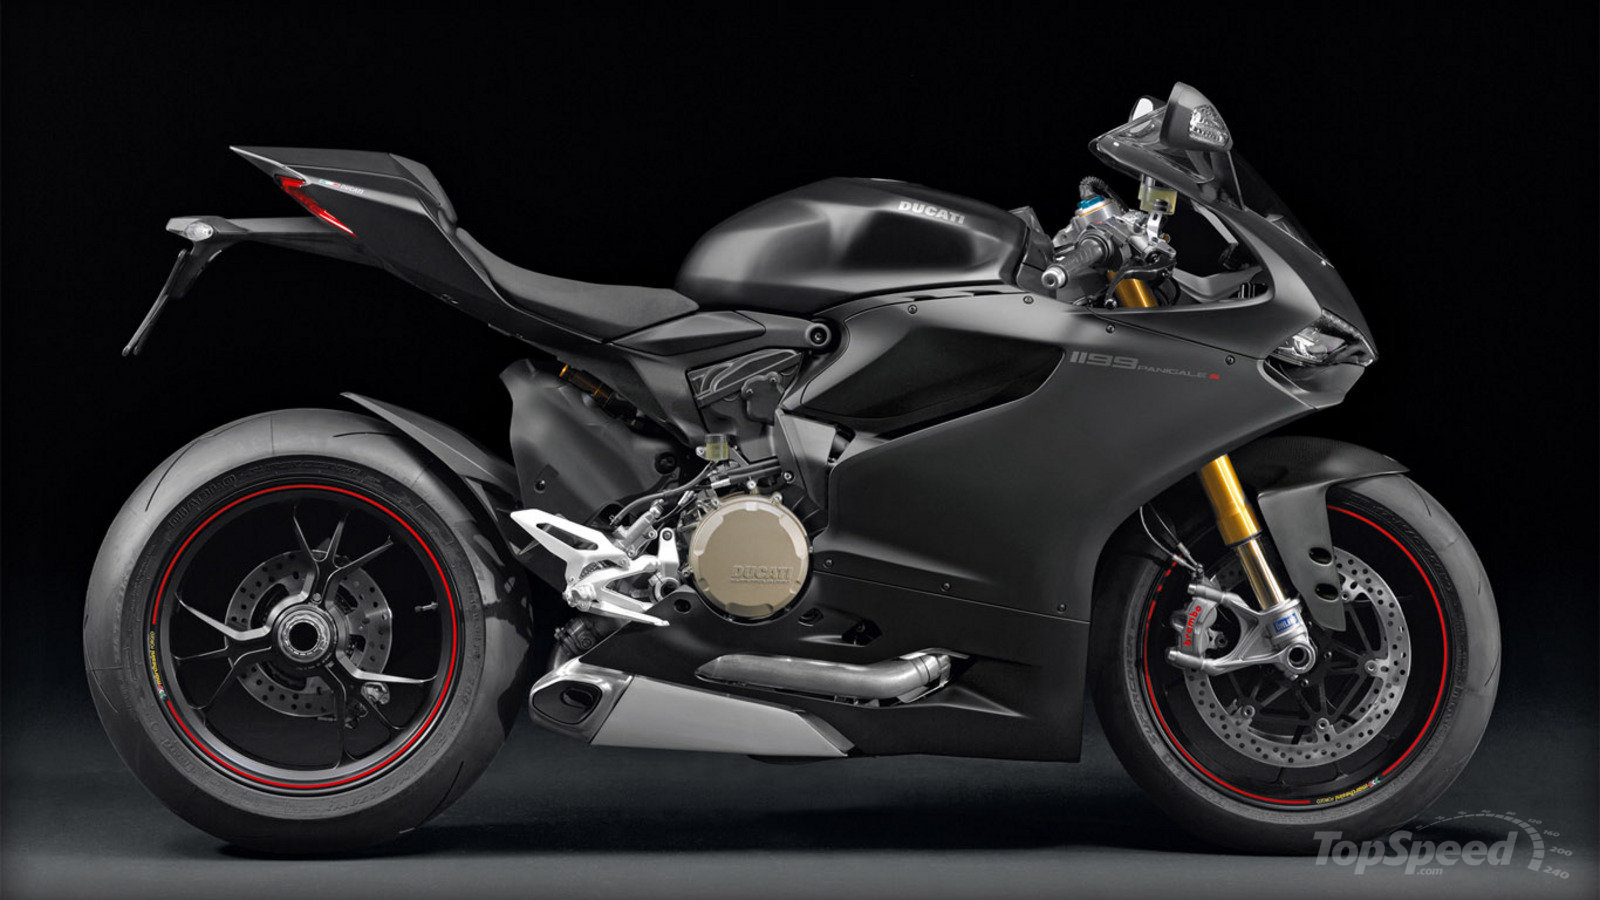 2014 ducati 1199 panigale s review top speed. Black Bedroom Furniture Sets. Home Design Ideas